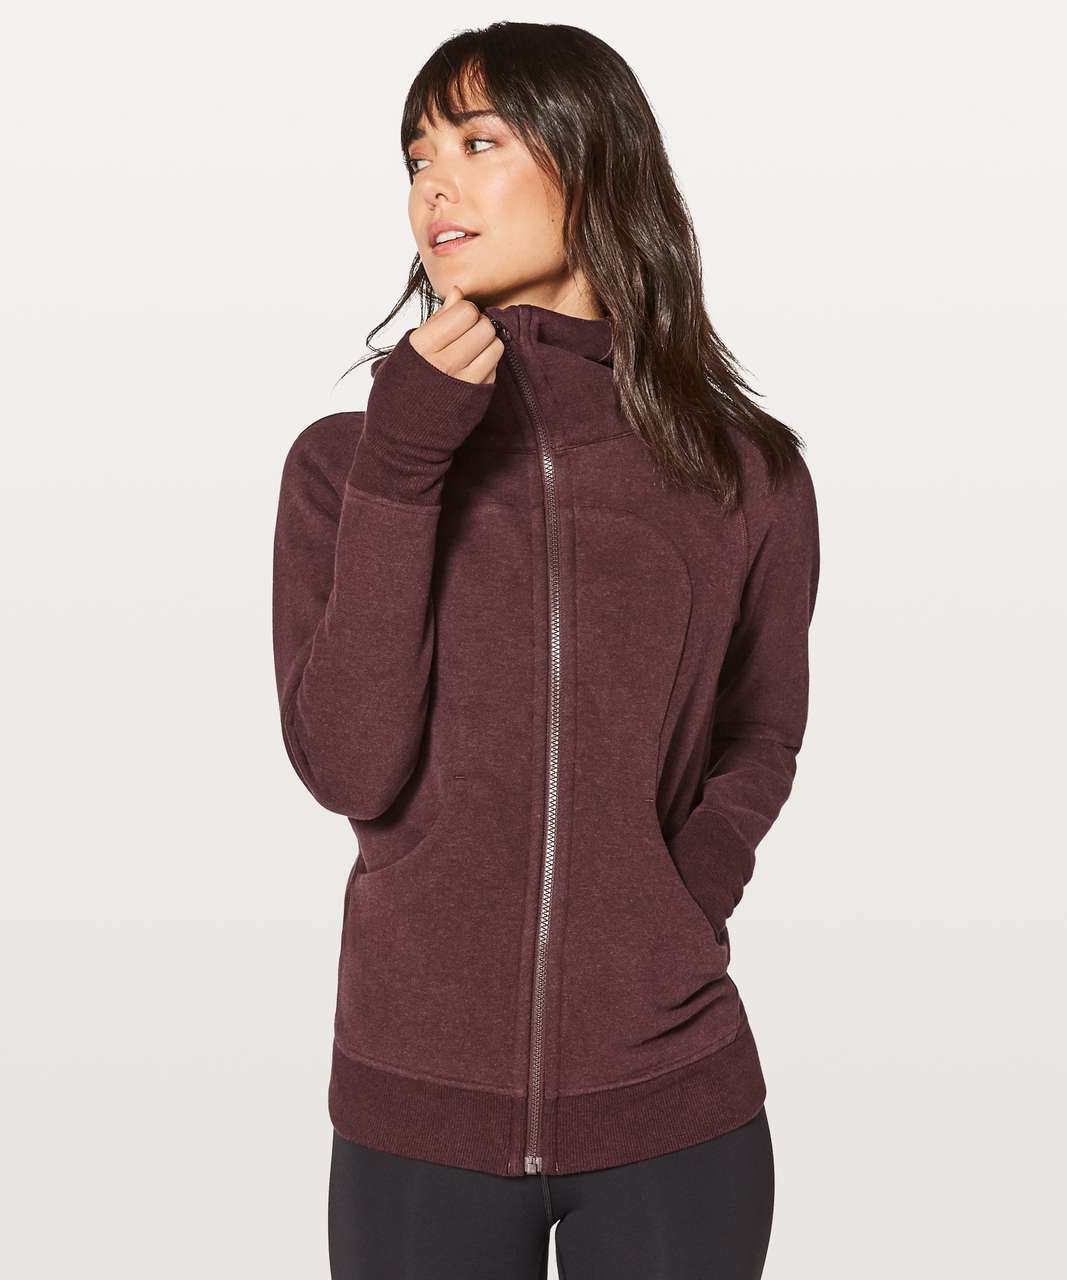 Lululemon Scuba Hoodie *Classic Cotton Fleece - Heathered Bordeaux Drama / Bordeaux Drama